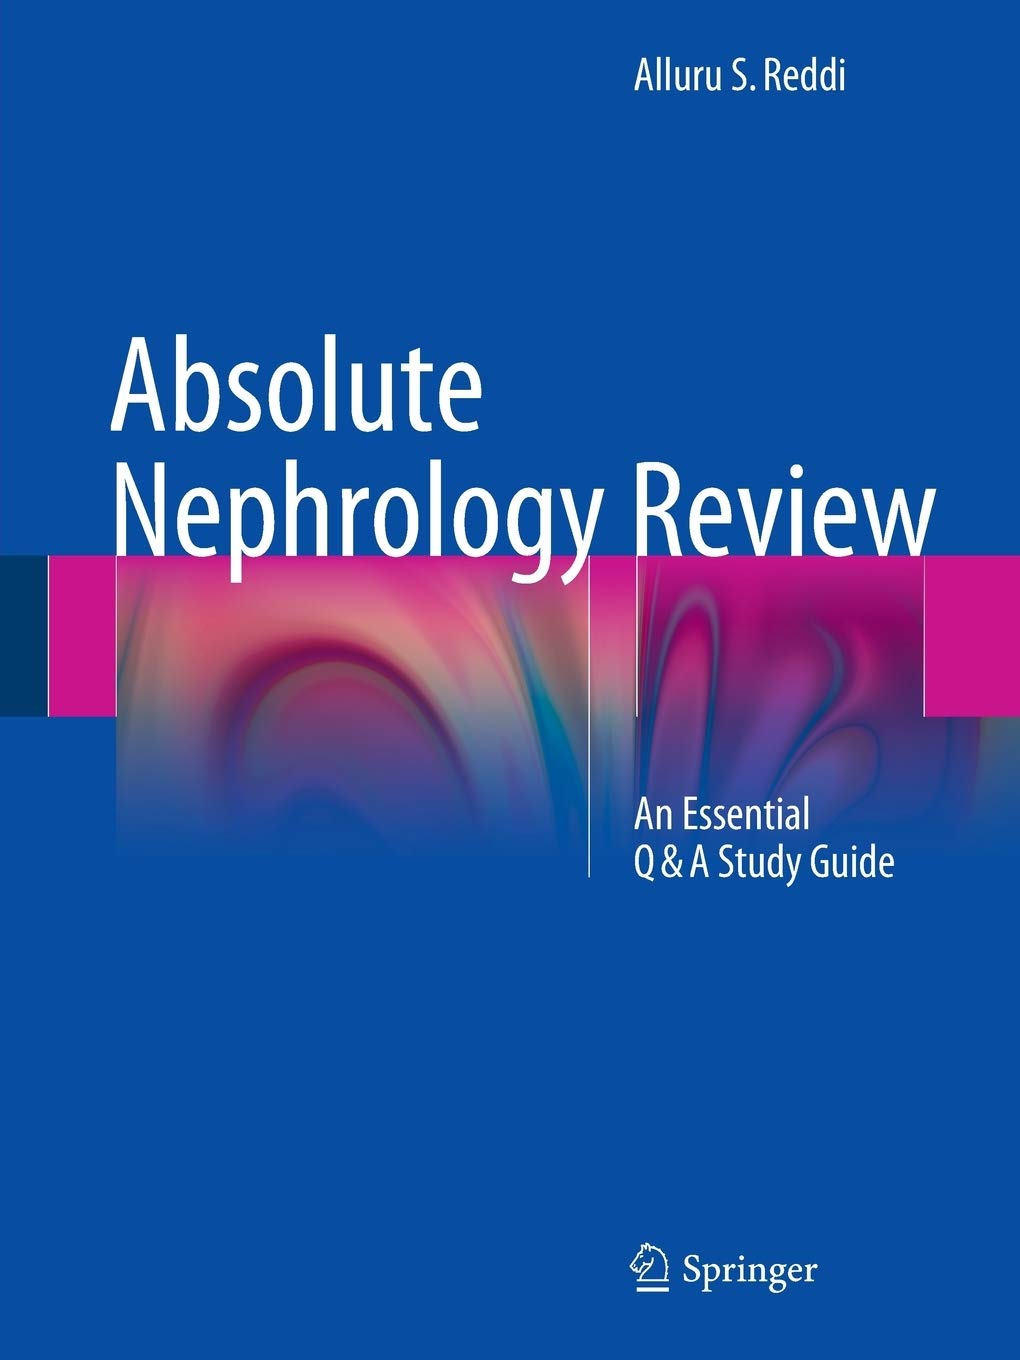 Absolute Nephrology Review: An Essential Q & A Study Guide